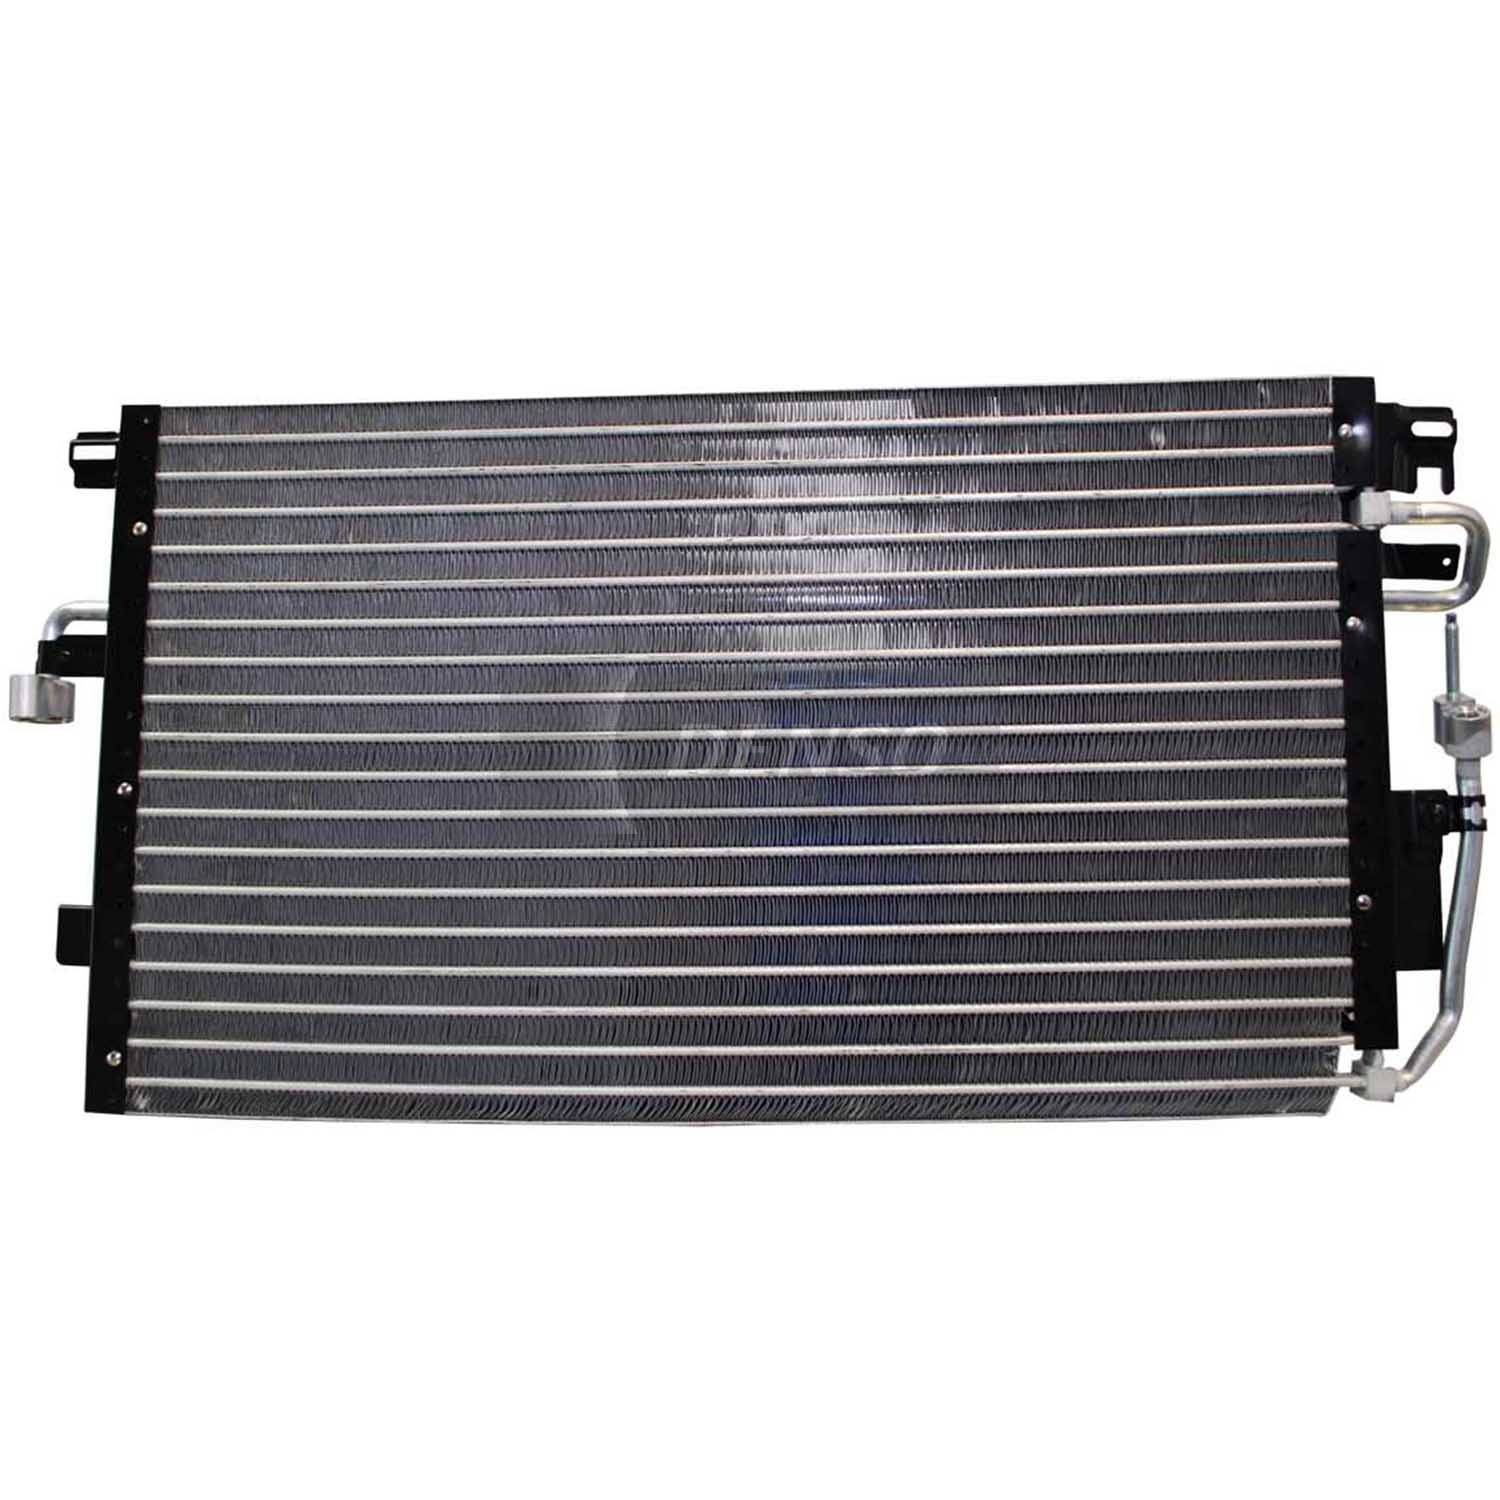 New A//C Condenser for Saturn Vue GM3030266 2005 to 2007